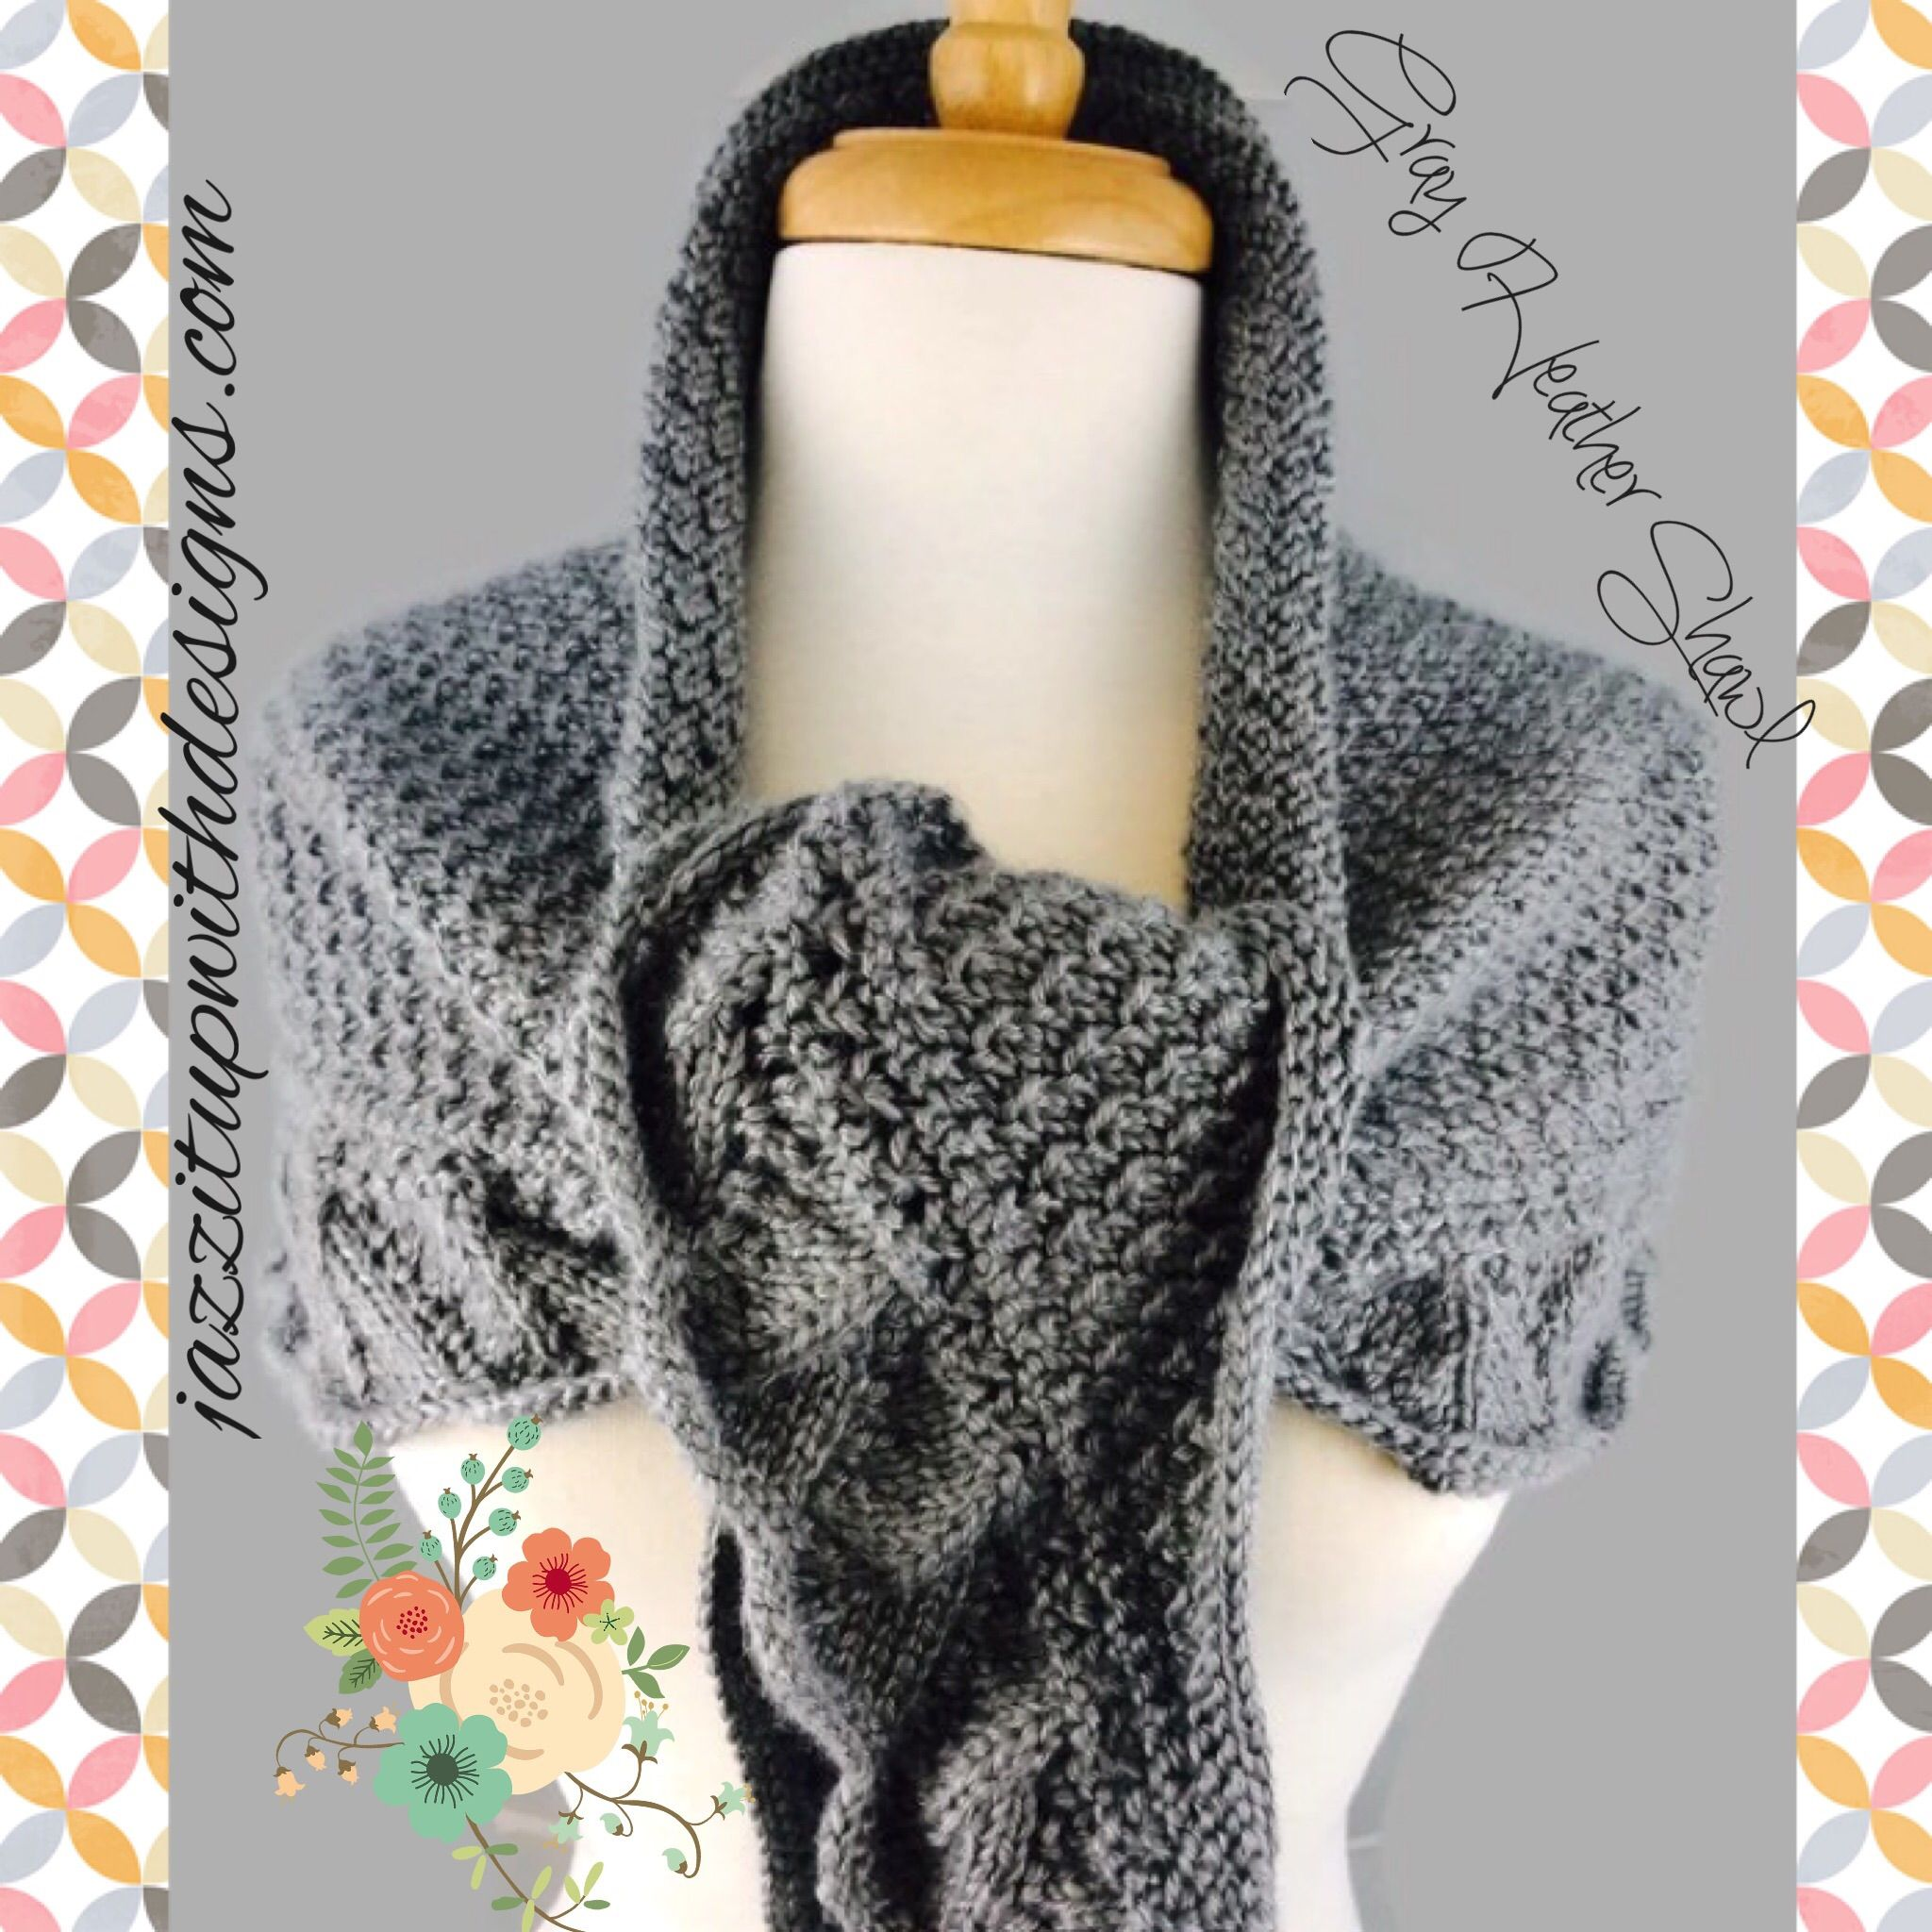 Gray Heather Demalangeni Shawl Scarf Handknit and Comfy #cpromo